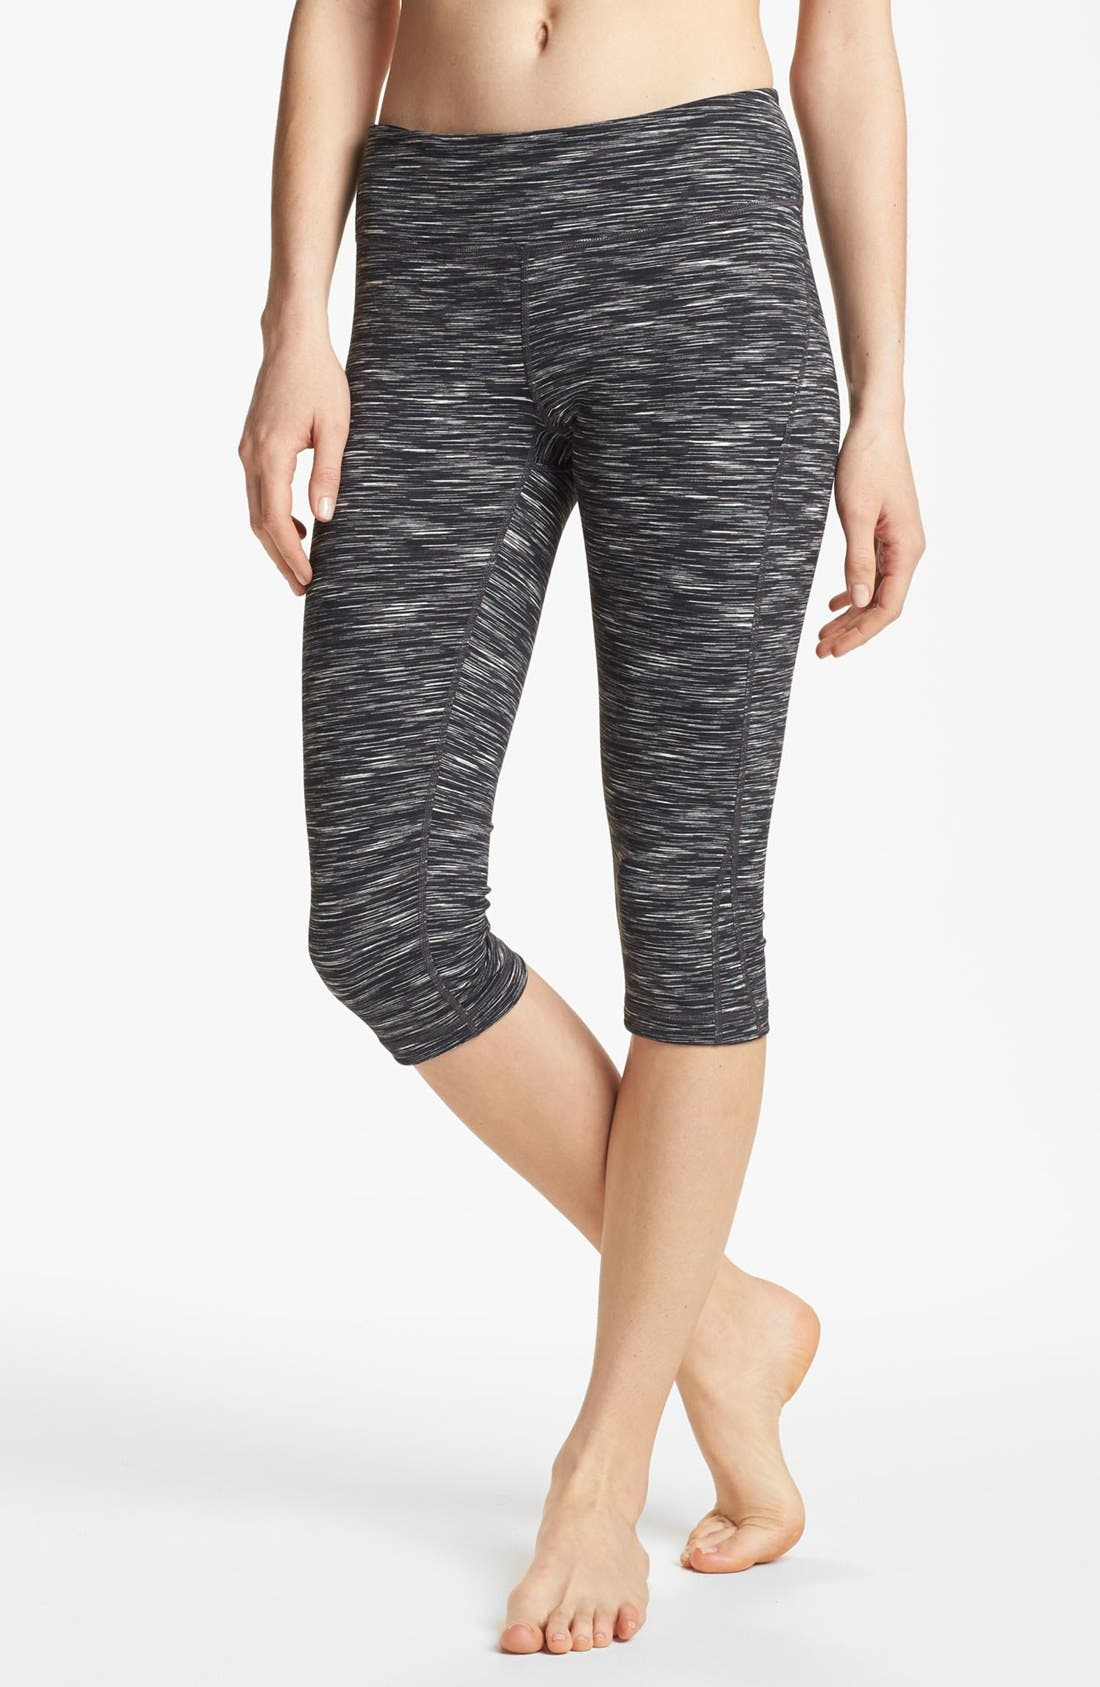 Alternate Image 1 Selected - Zella 'Live In' Eclipse Space Dye Capris